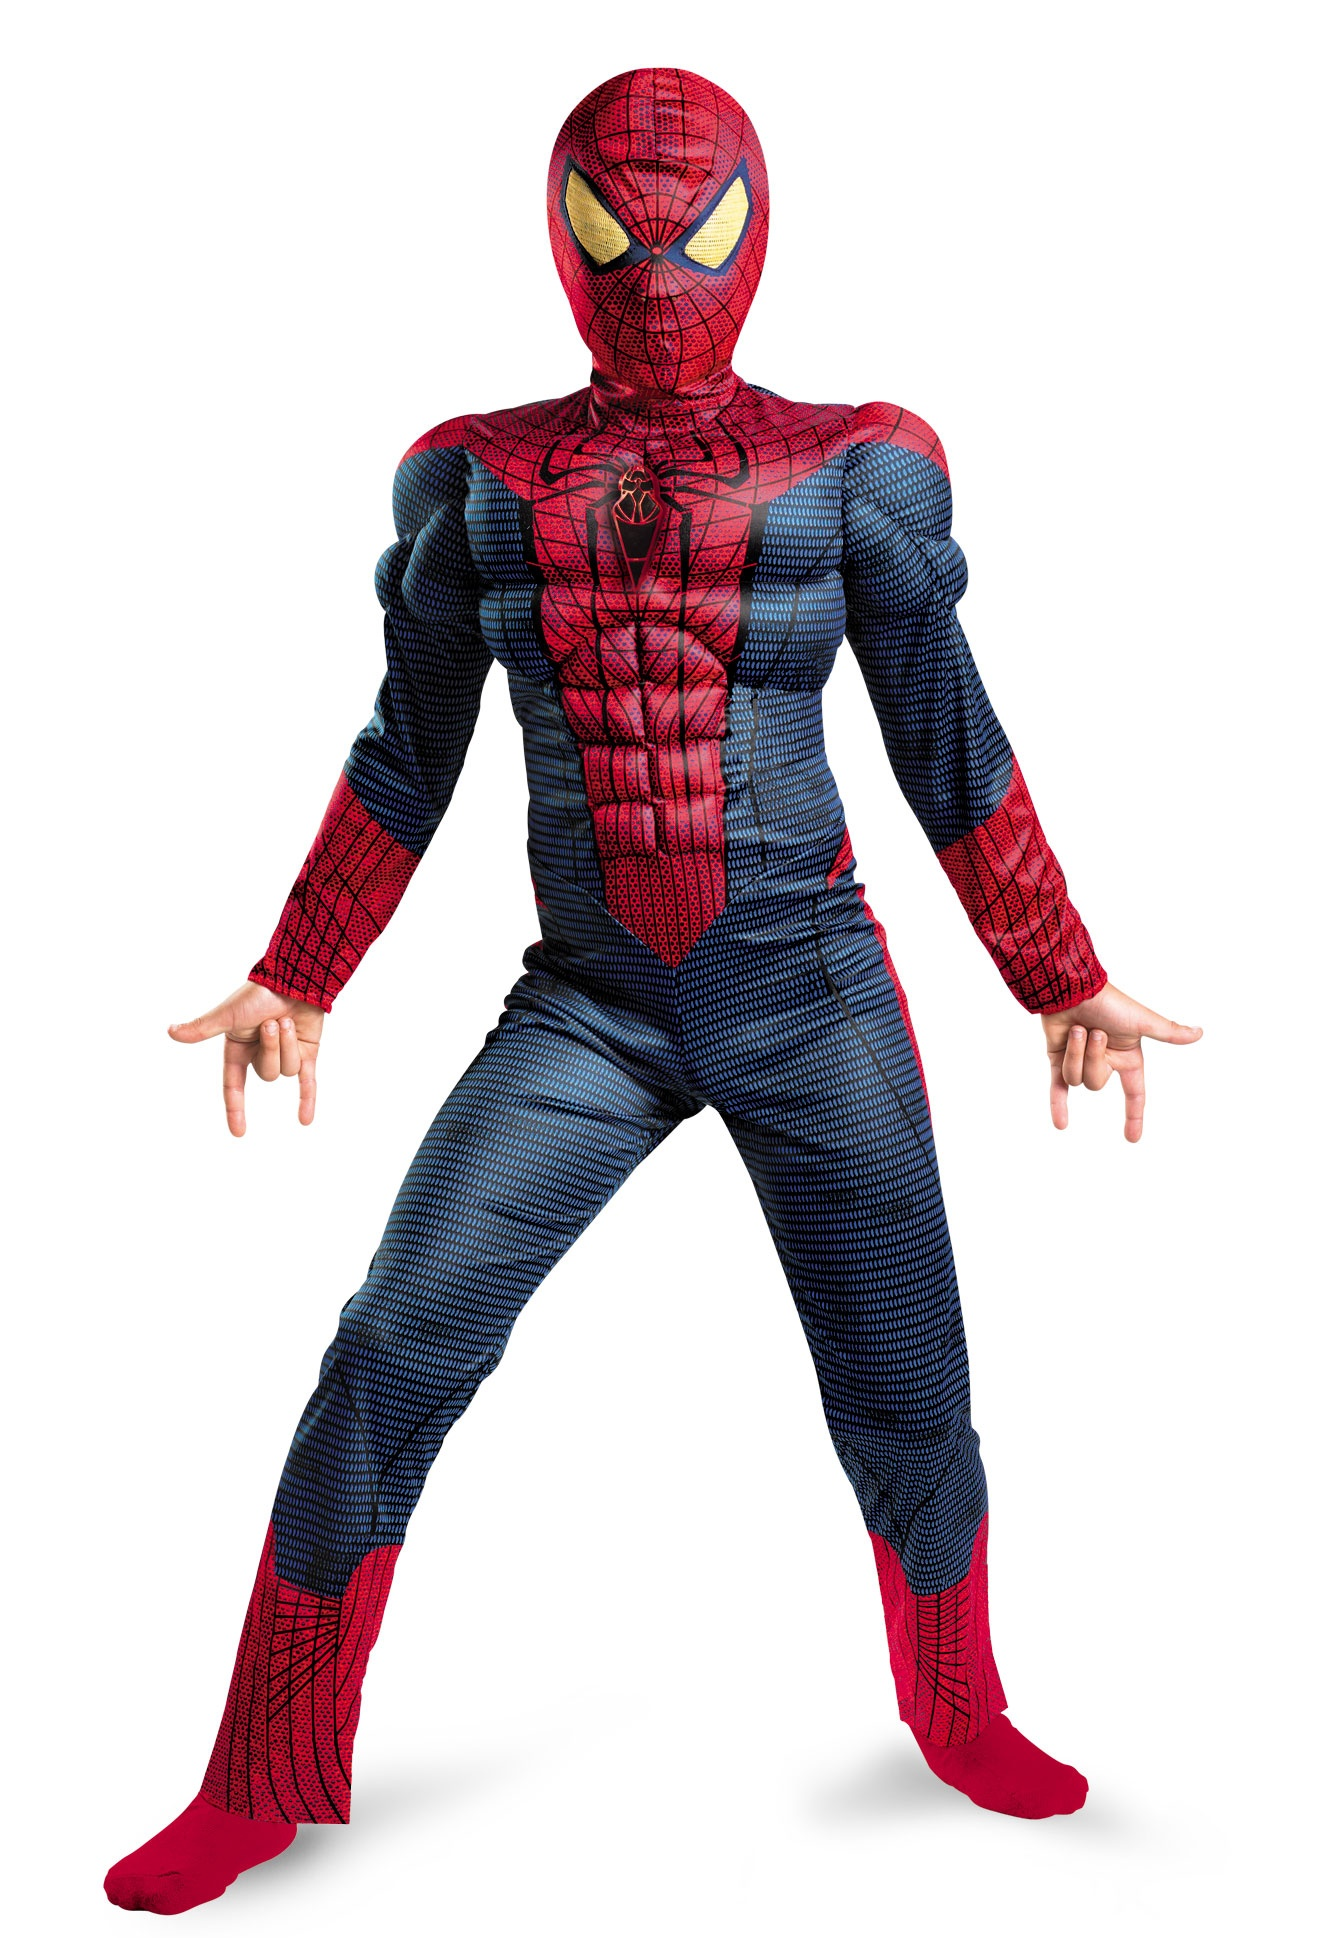 Provide Spider-man Costume for Kids and jelly555.mlman Costumes are best for halloween Cosplay,we provide many styles of spiderman costumes,spider-man jelly555.ml-Man is a very very hot fictional superhero character in the world.